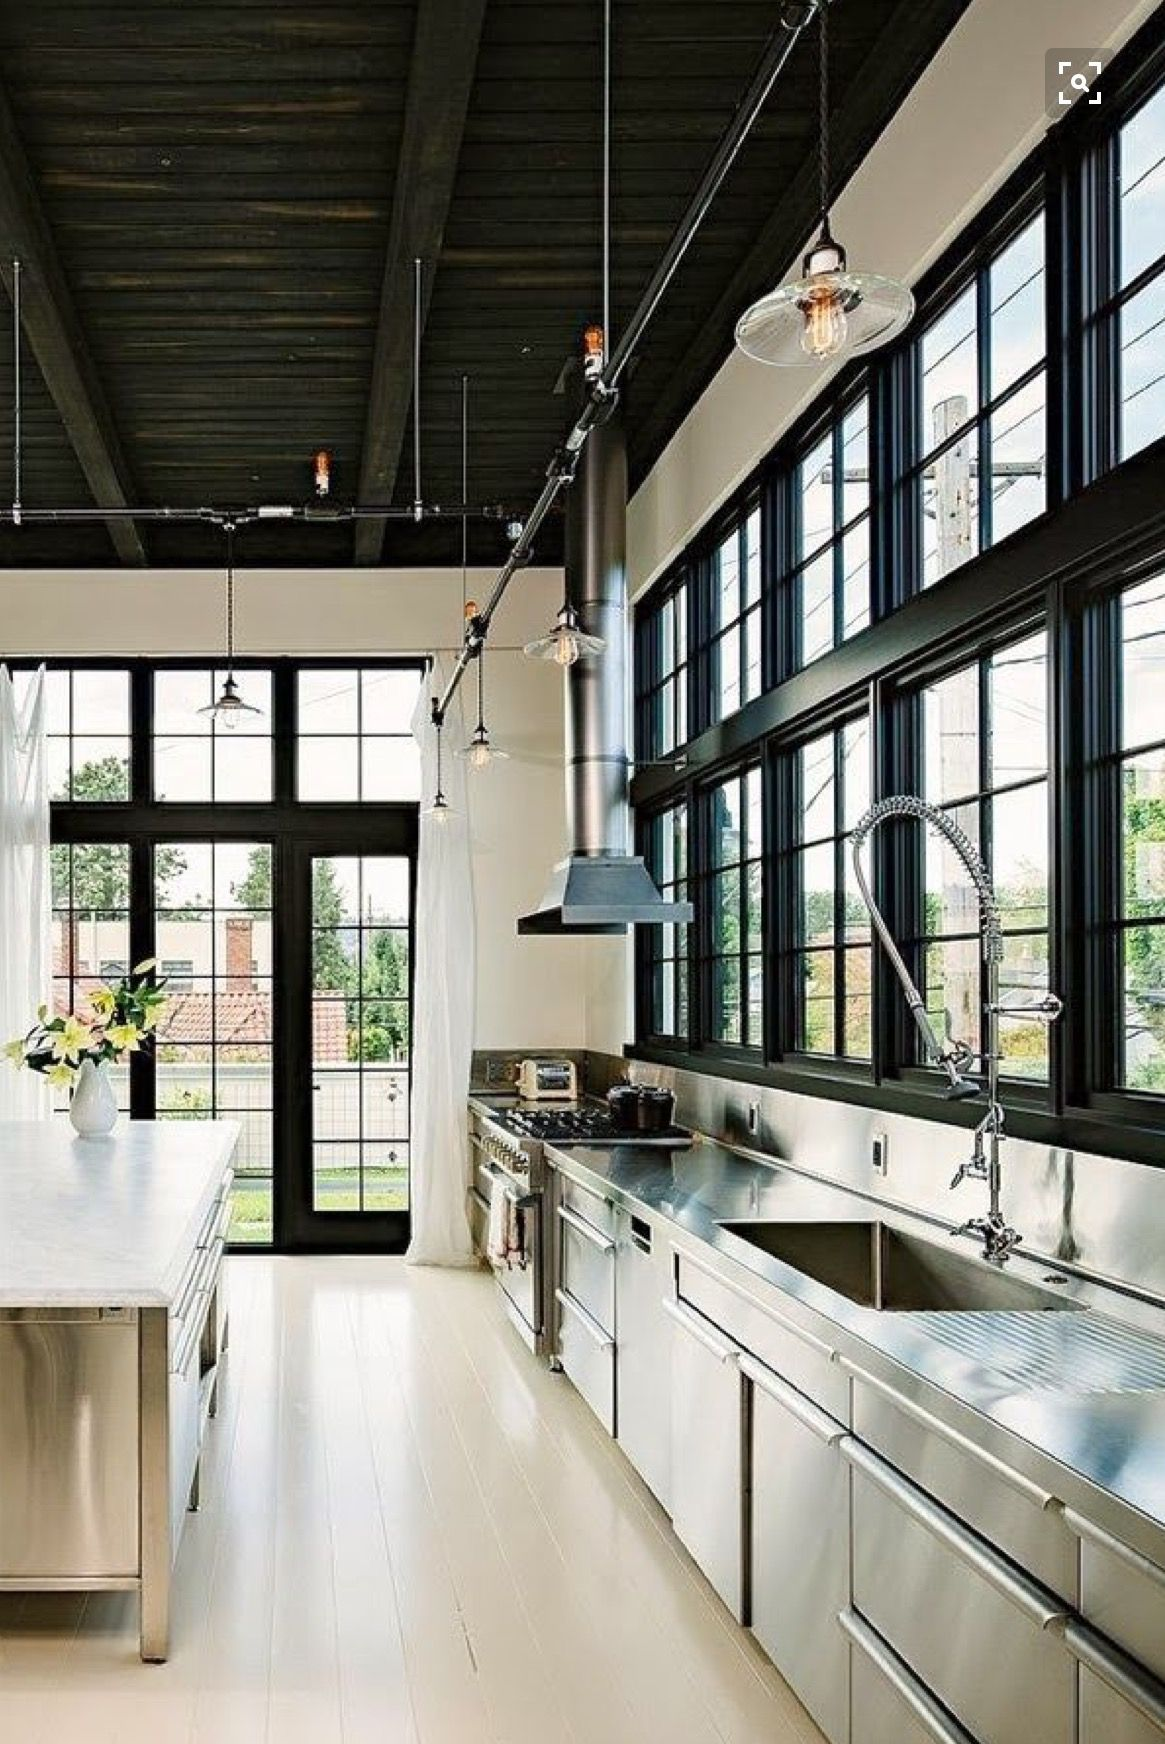 Industrial Style Is An Immense Trend In Interior Design At